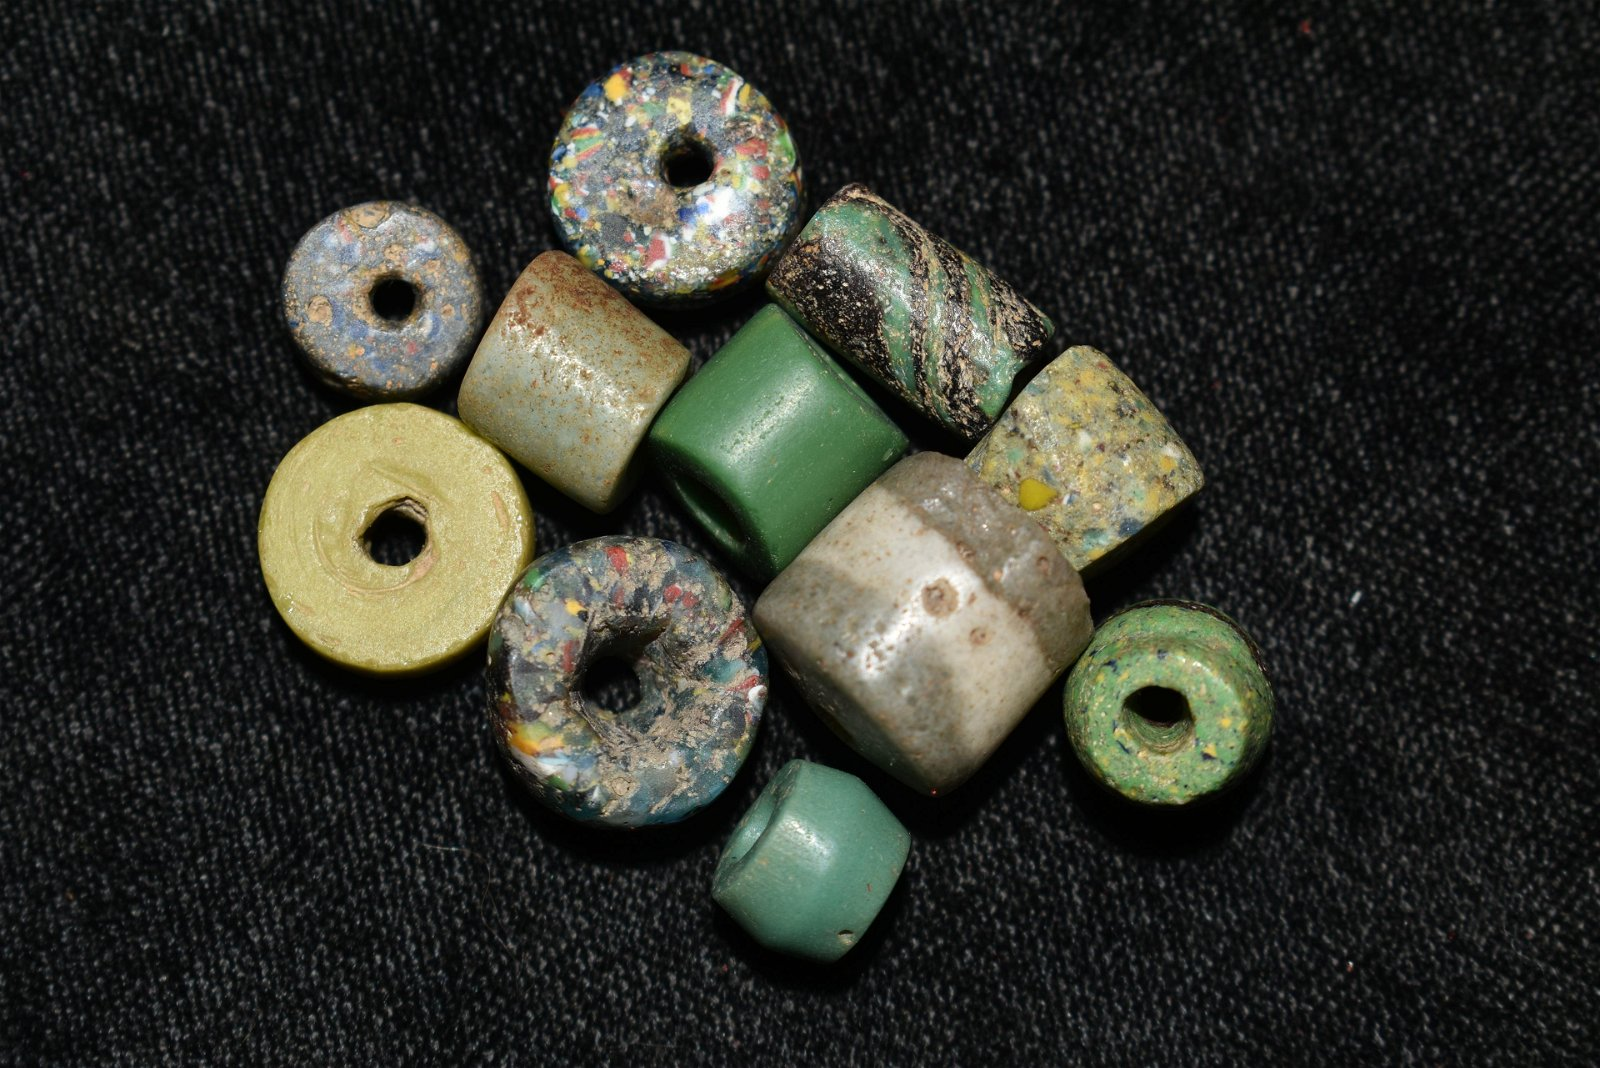 Lot of 11 Historical Trade Beads